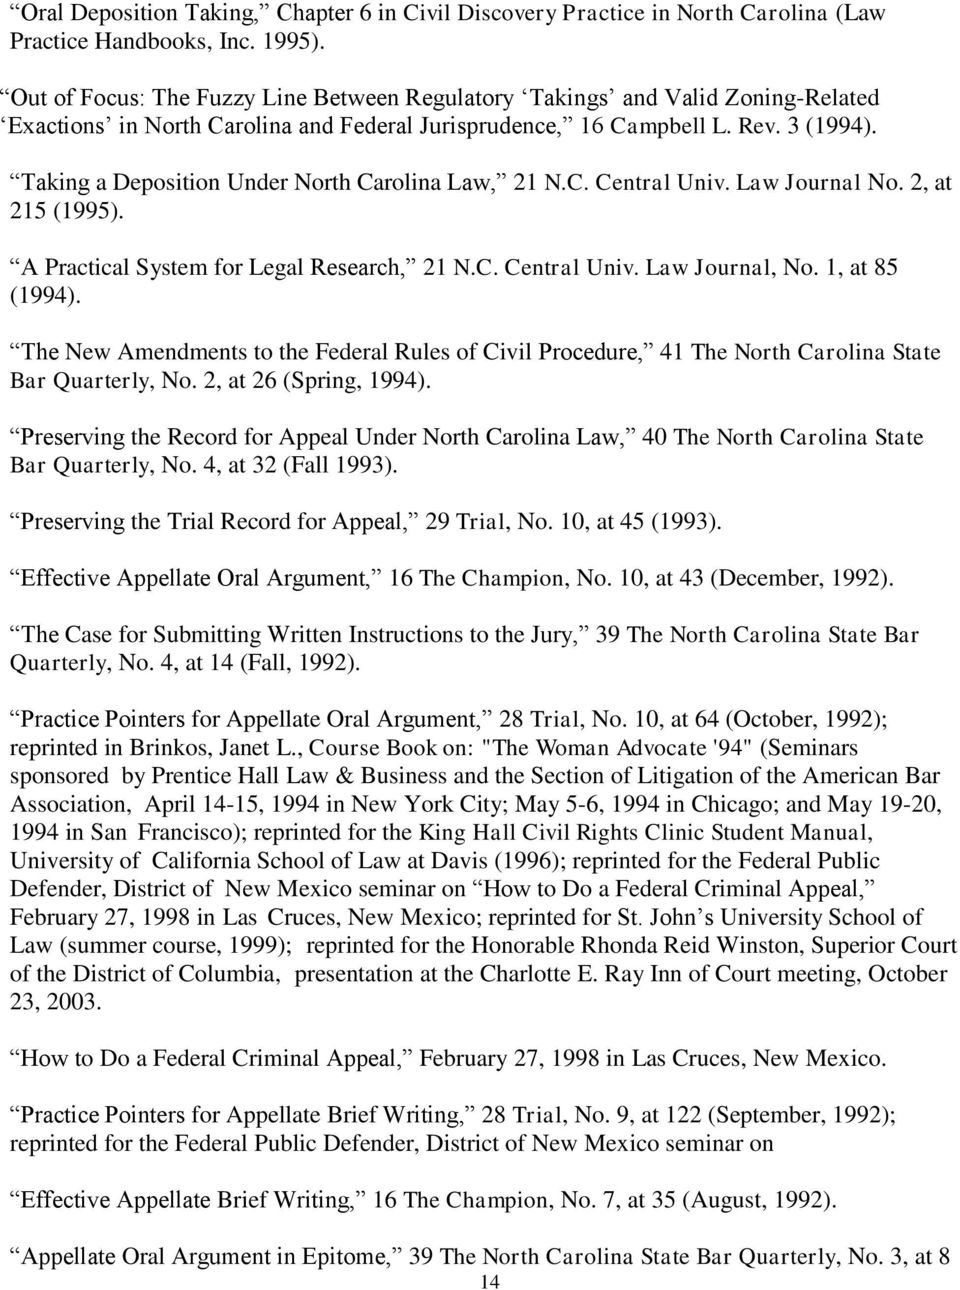 Taking a Deposition Under North Carolina Law, 21 N.C. Central Univ. Law Journal No. 2, at 215 (1995). A Practical System for Legal Research, 21 N.C. Central Univ. Law Journal, No. 1, at 85 (1994).